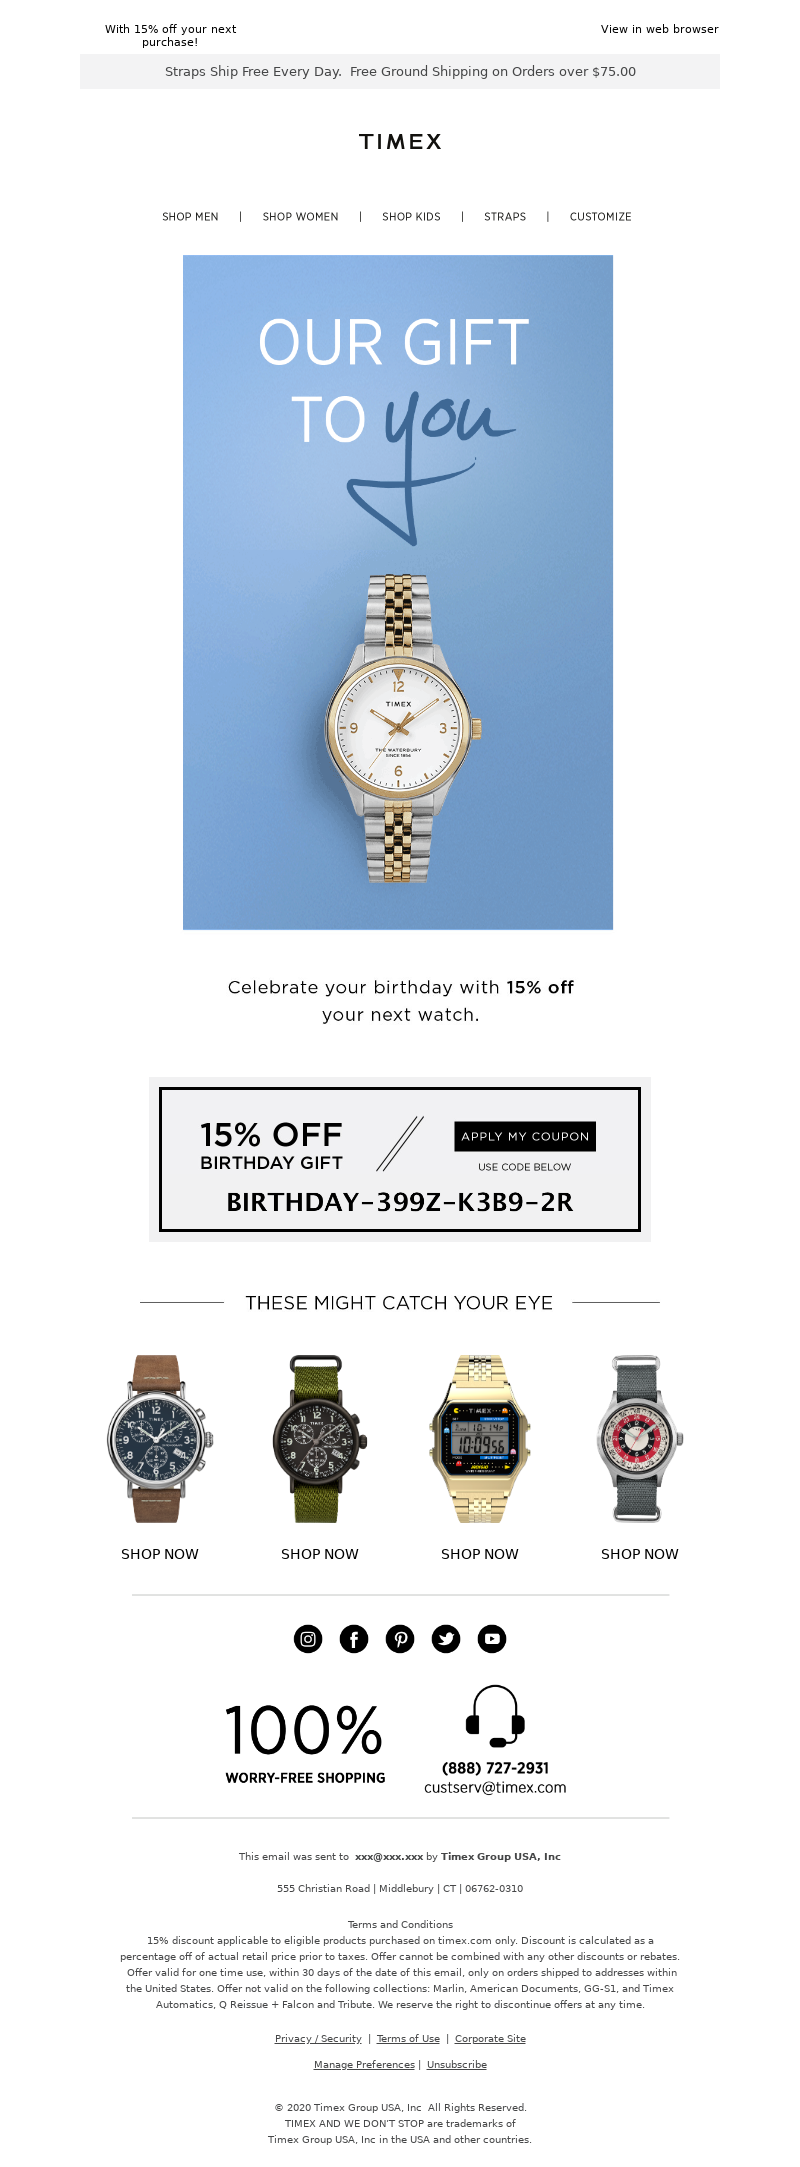 Birthday email example that includes promo code